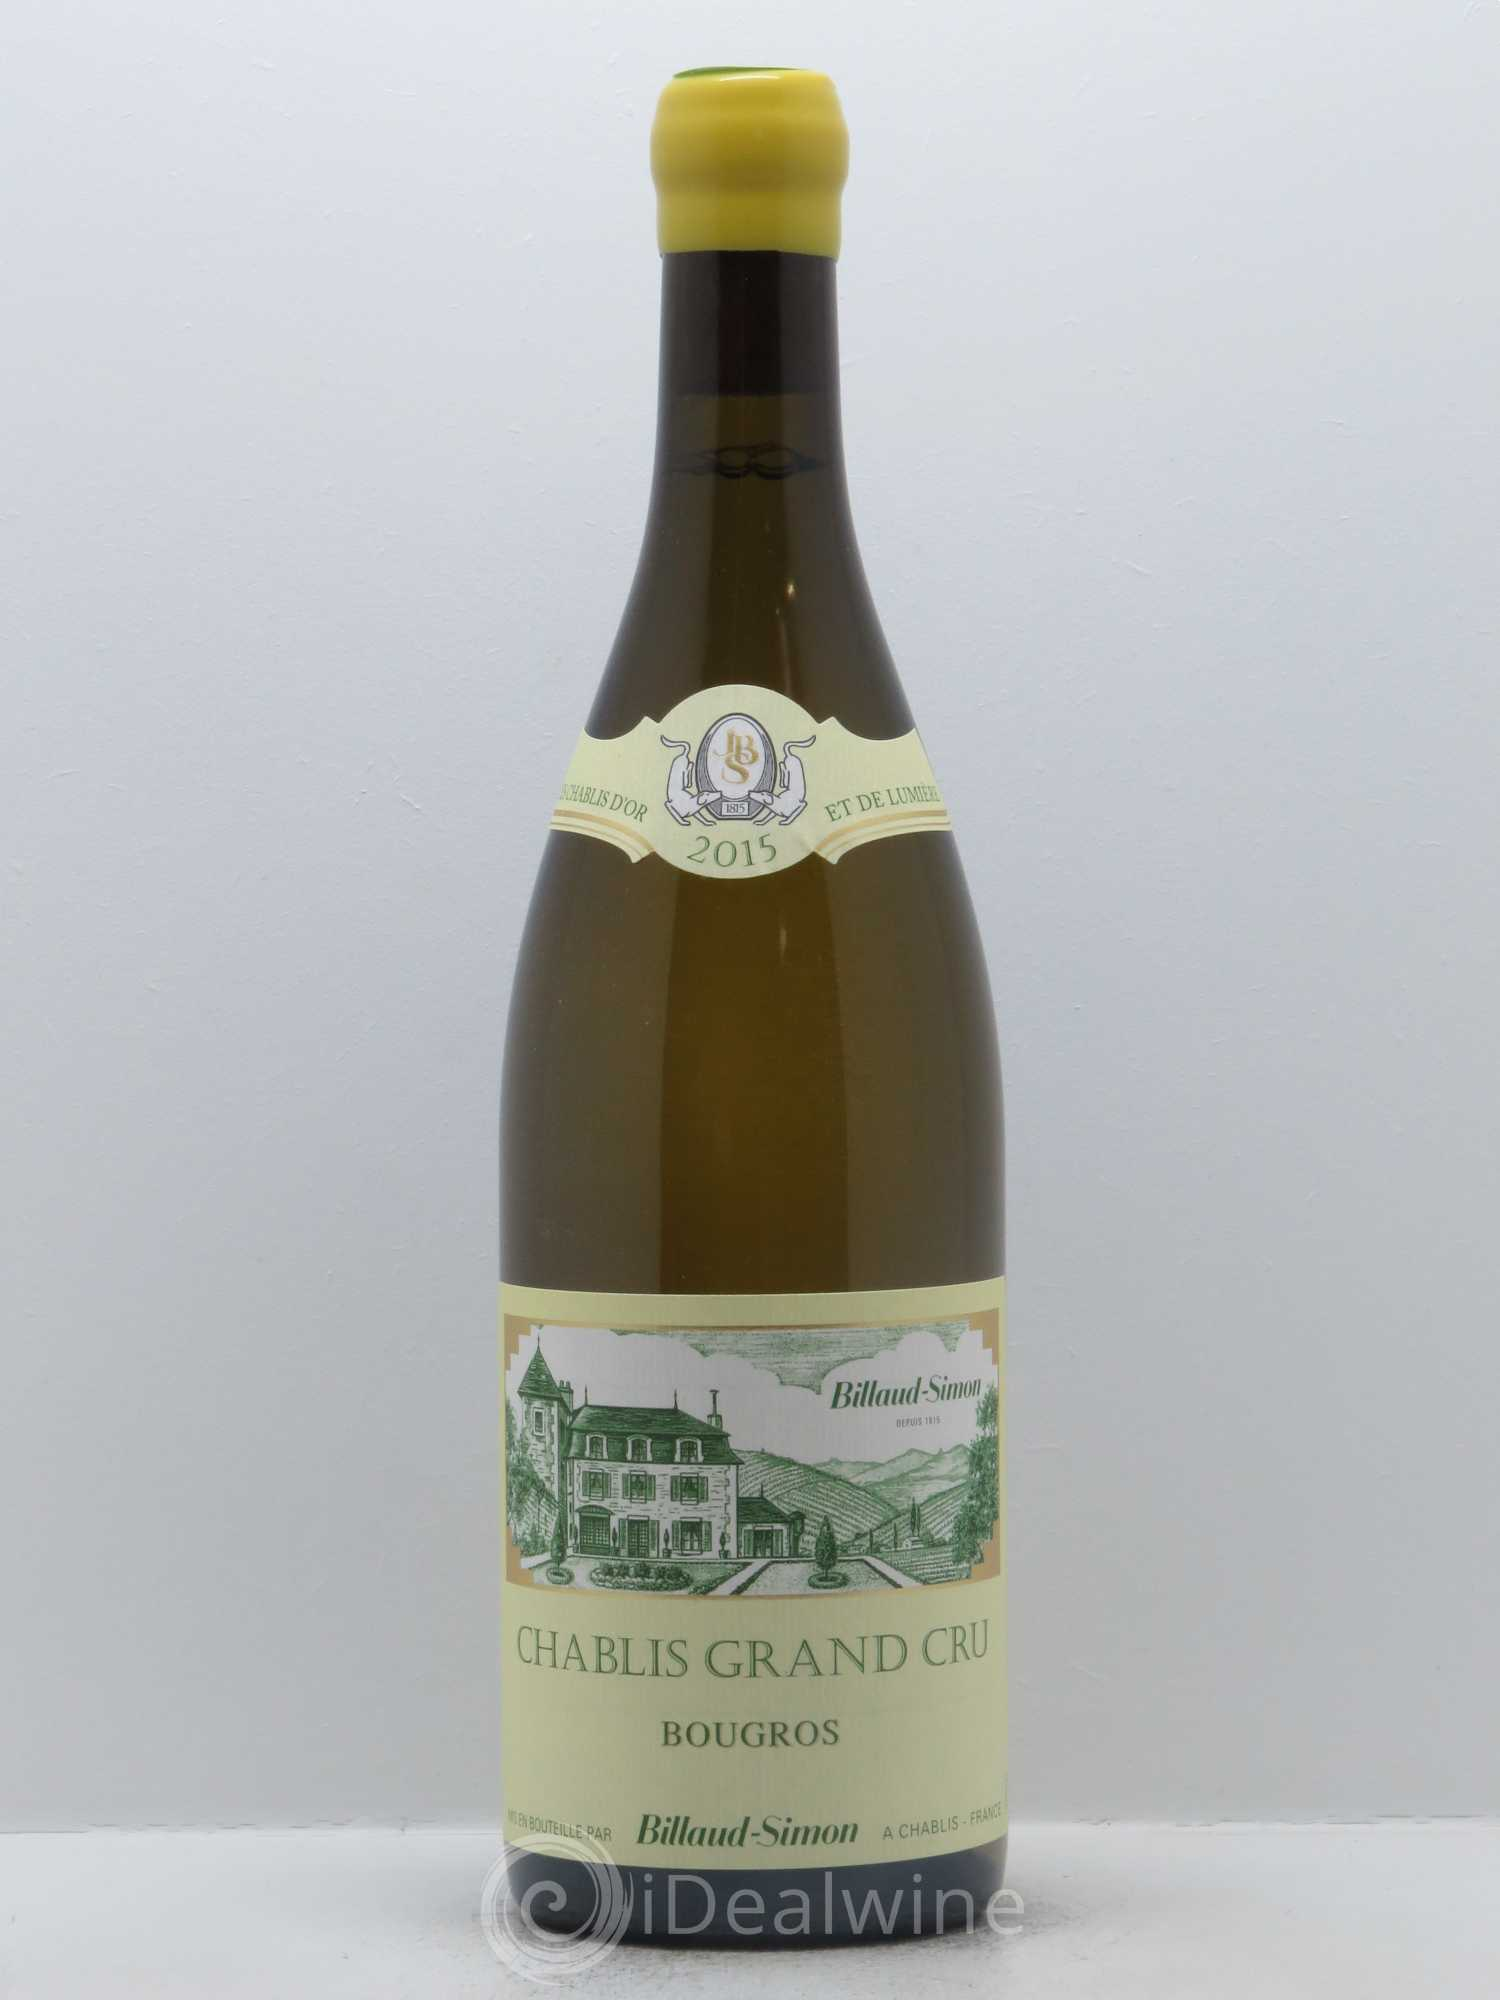 Chablis Grand Cru Bougros Billaud-Simon (Domaine)  2015 - Lot of 1 Bottle